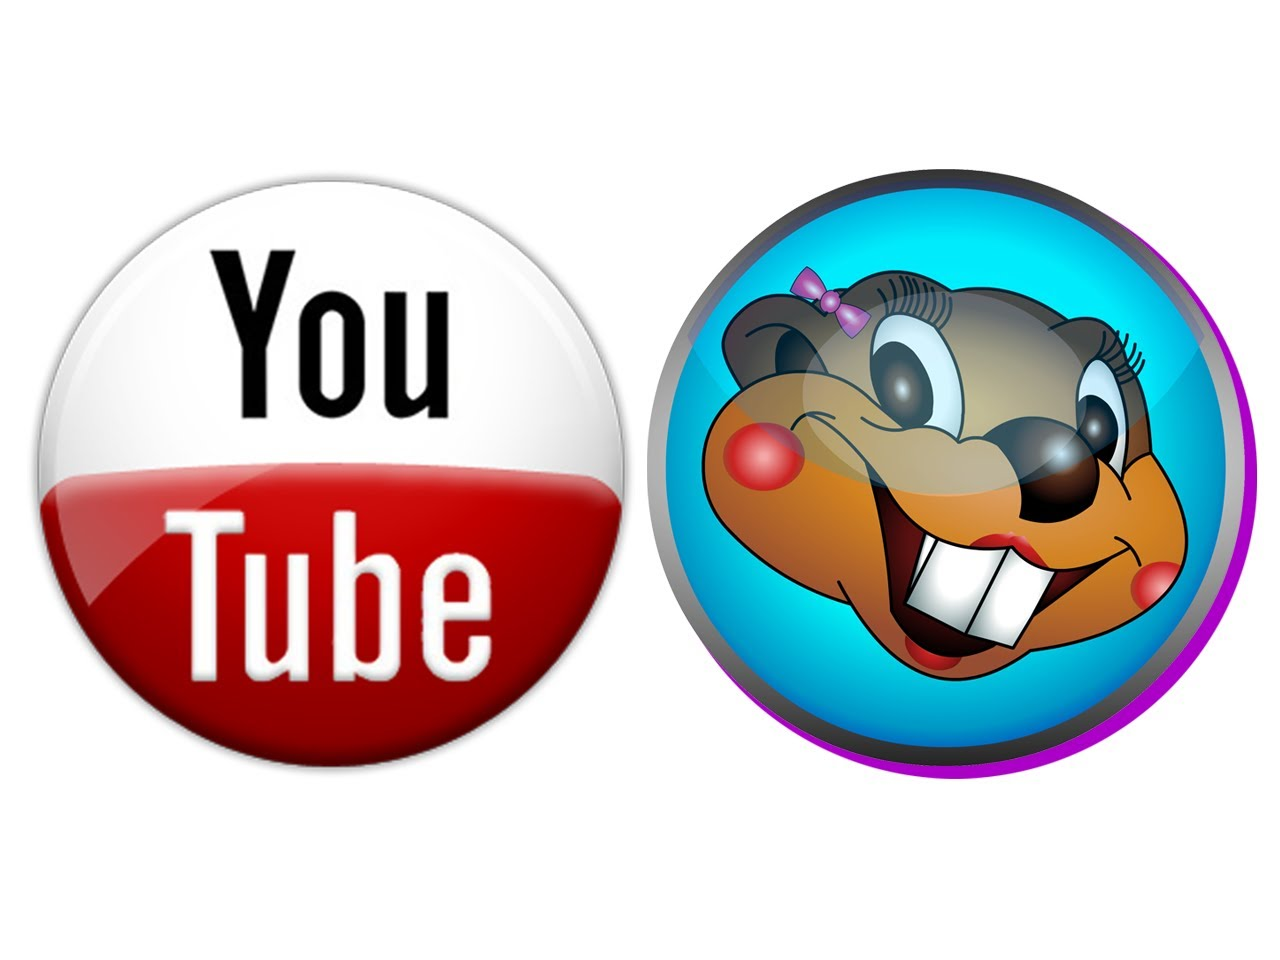 Busy Beavers Dvd Party Youtube Sampler Kids Toddler English Esl Learning Songs Place 4 Kids